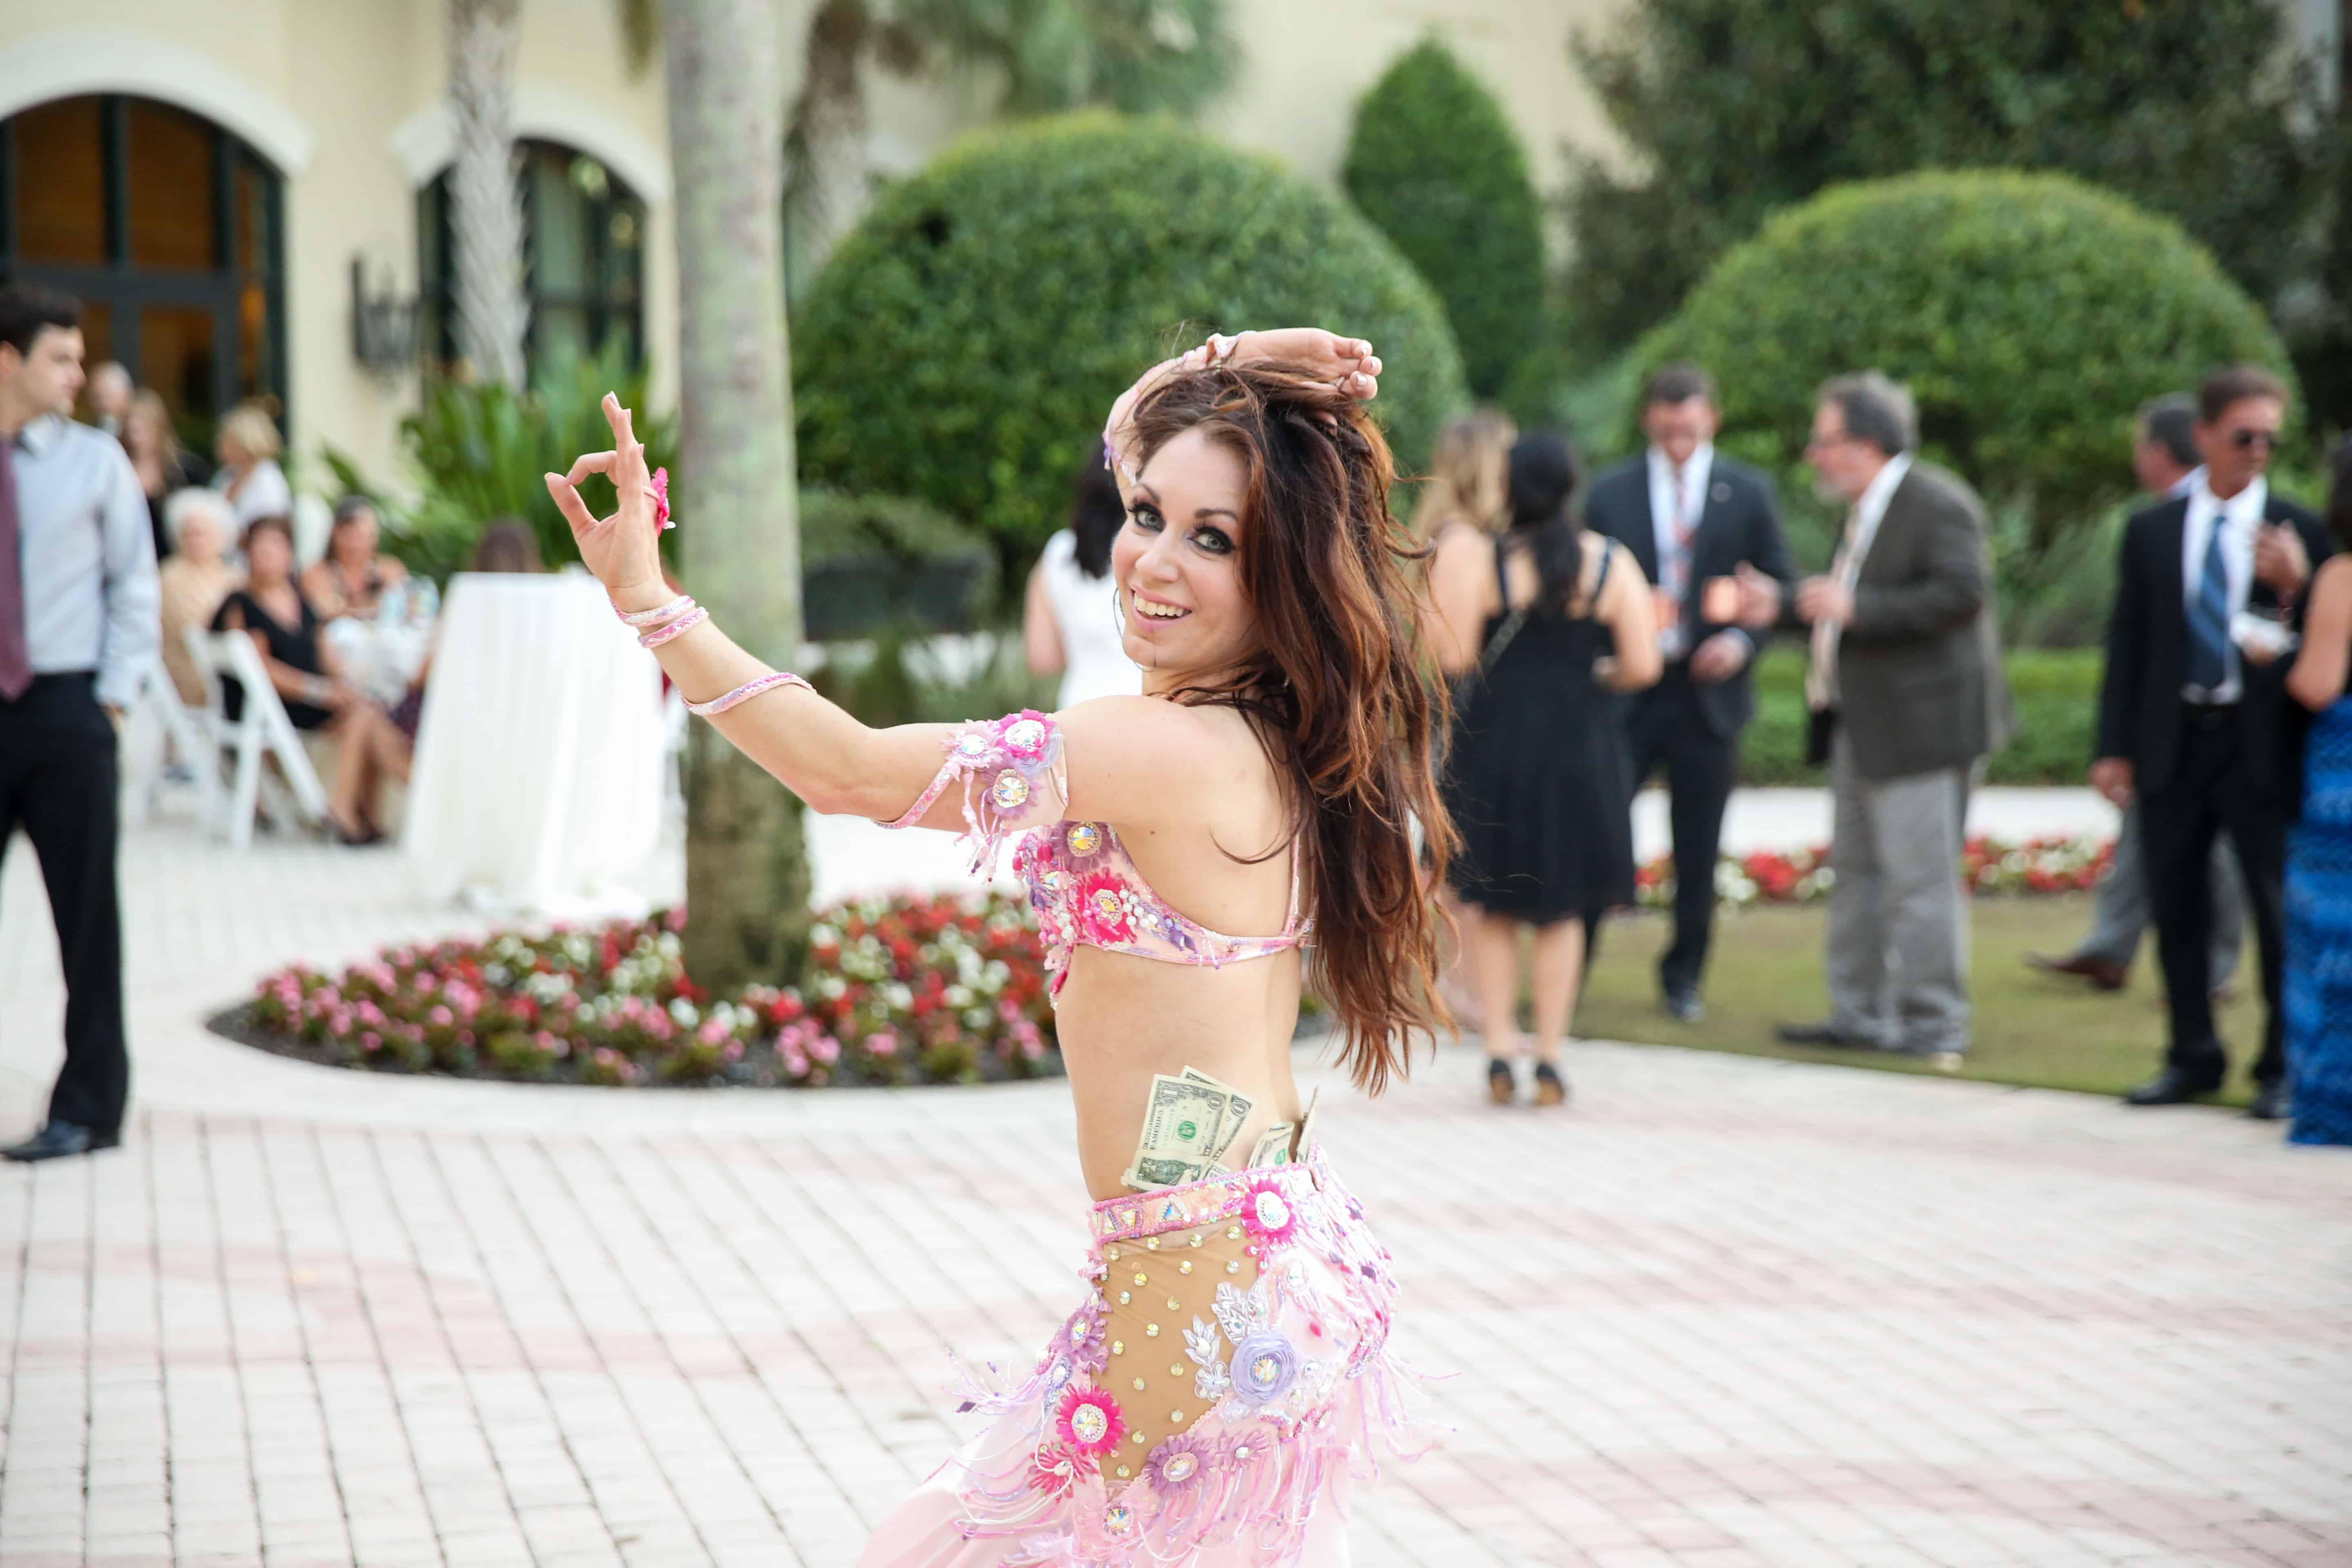 Carrara performs belly dance during the cocktail hour at an LGBT wedding at Omni Championsgate. Photo by LiveHappy Studio